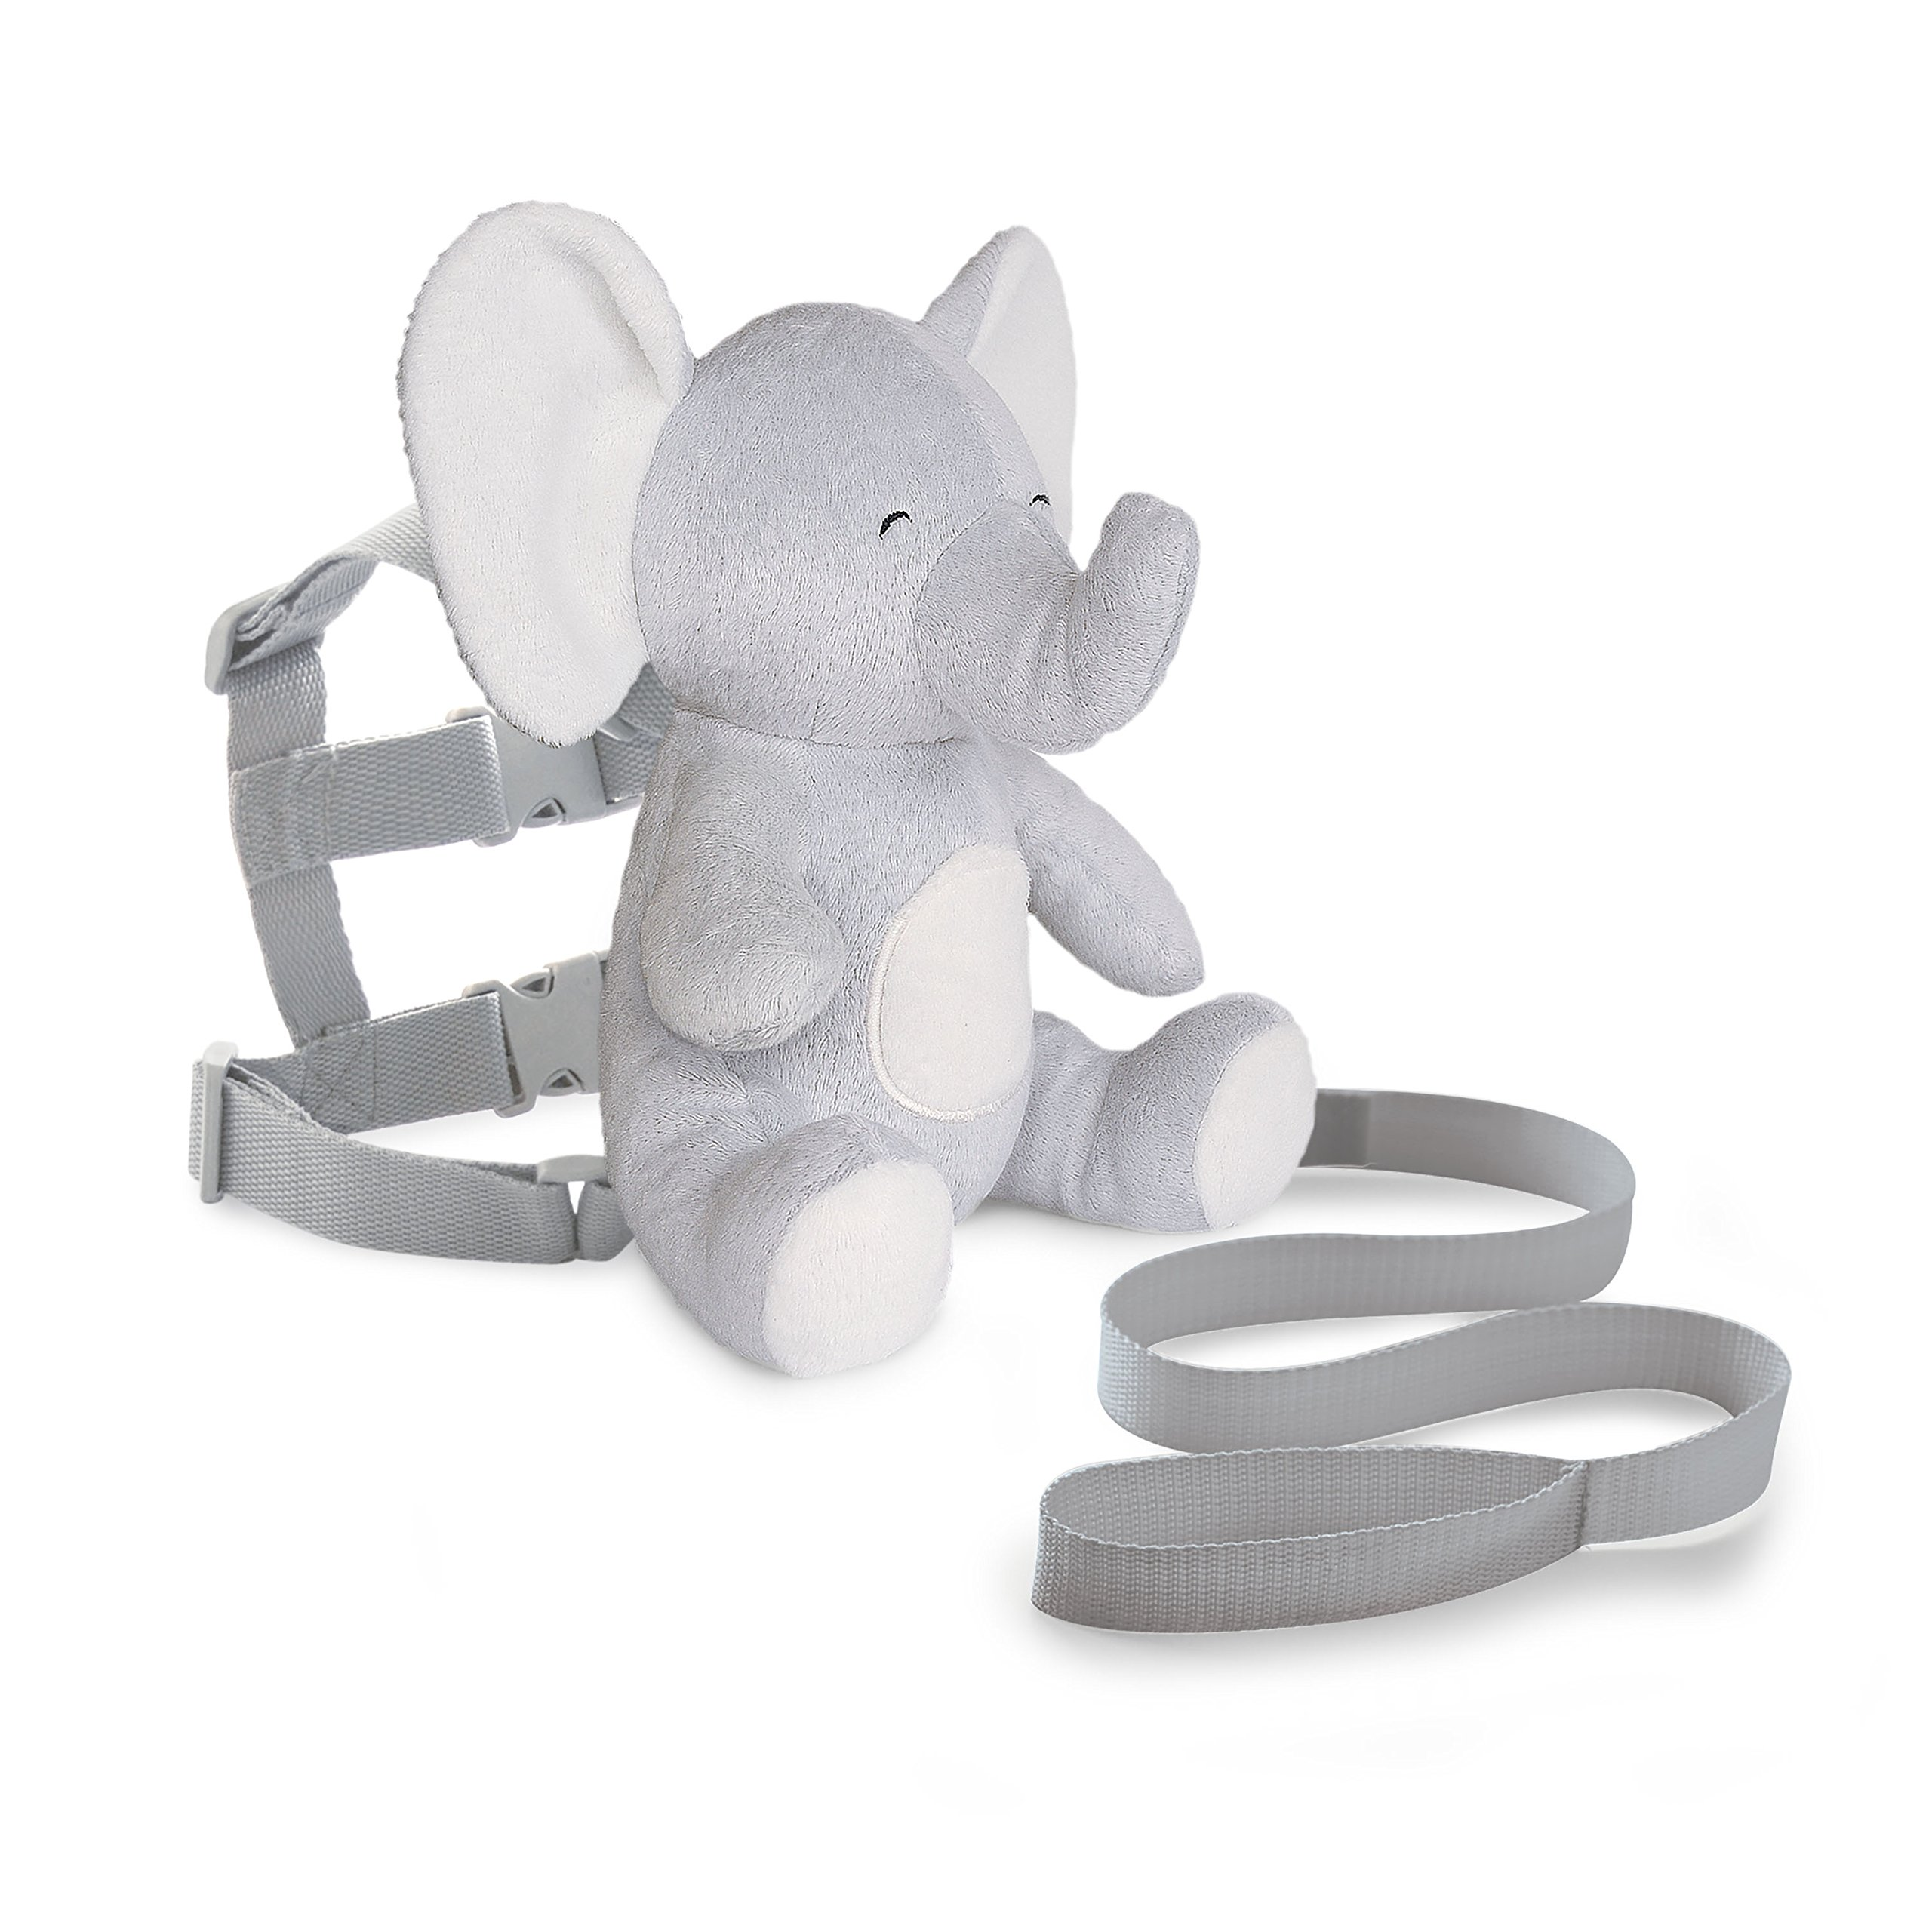 Carter's Toddler Safety Harness, Animal Elephant, Grey/White